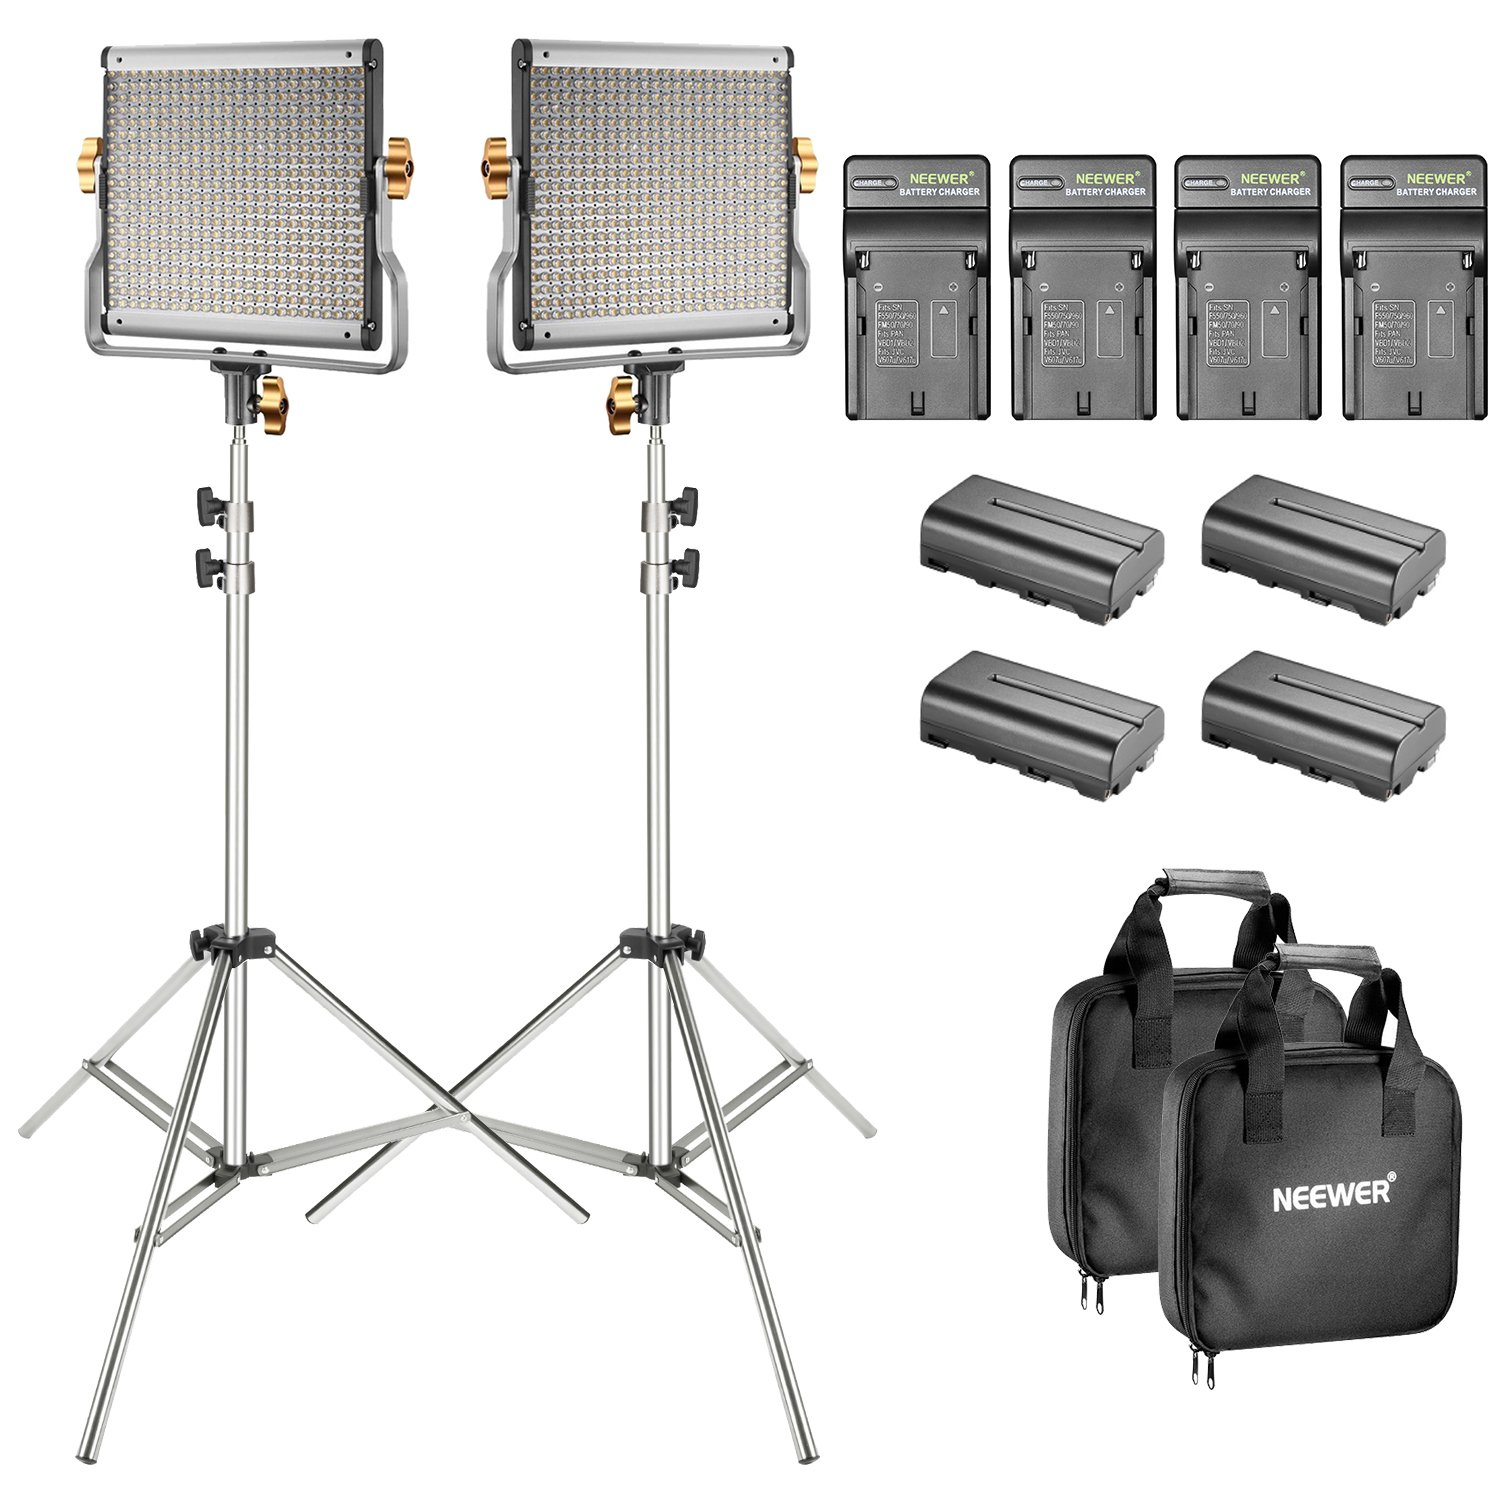 Neewer 2-Pack Bi-color Dimmable 480 LED Video Light and Stand Lighting Kit with 4-Pack Battery and Charger - 3200-5600K,CRI 96+ LED Panel with U Bracket for Camera Photo Studio, YouTube Video Shooting by Neewer